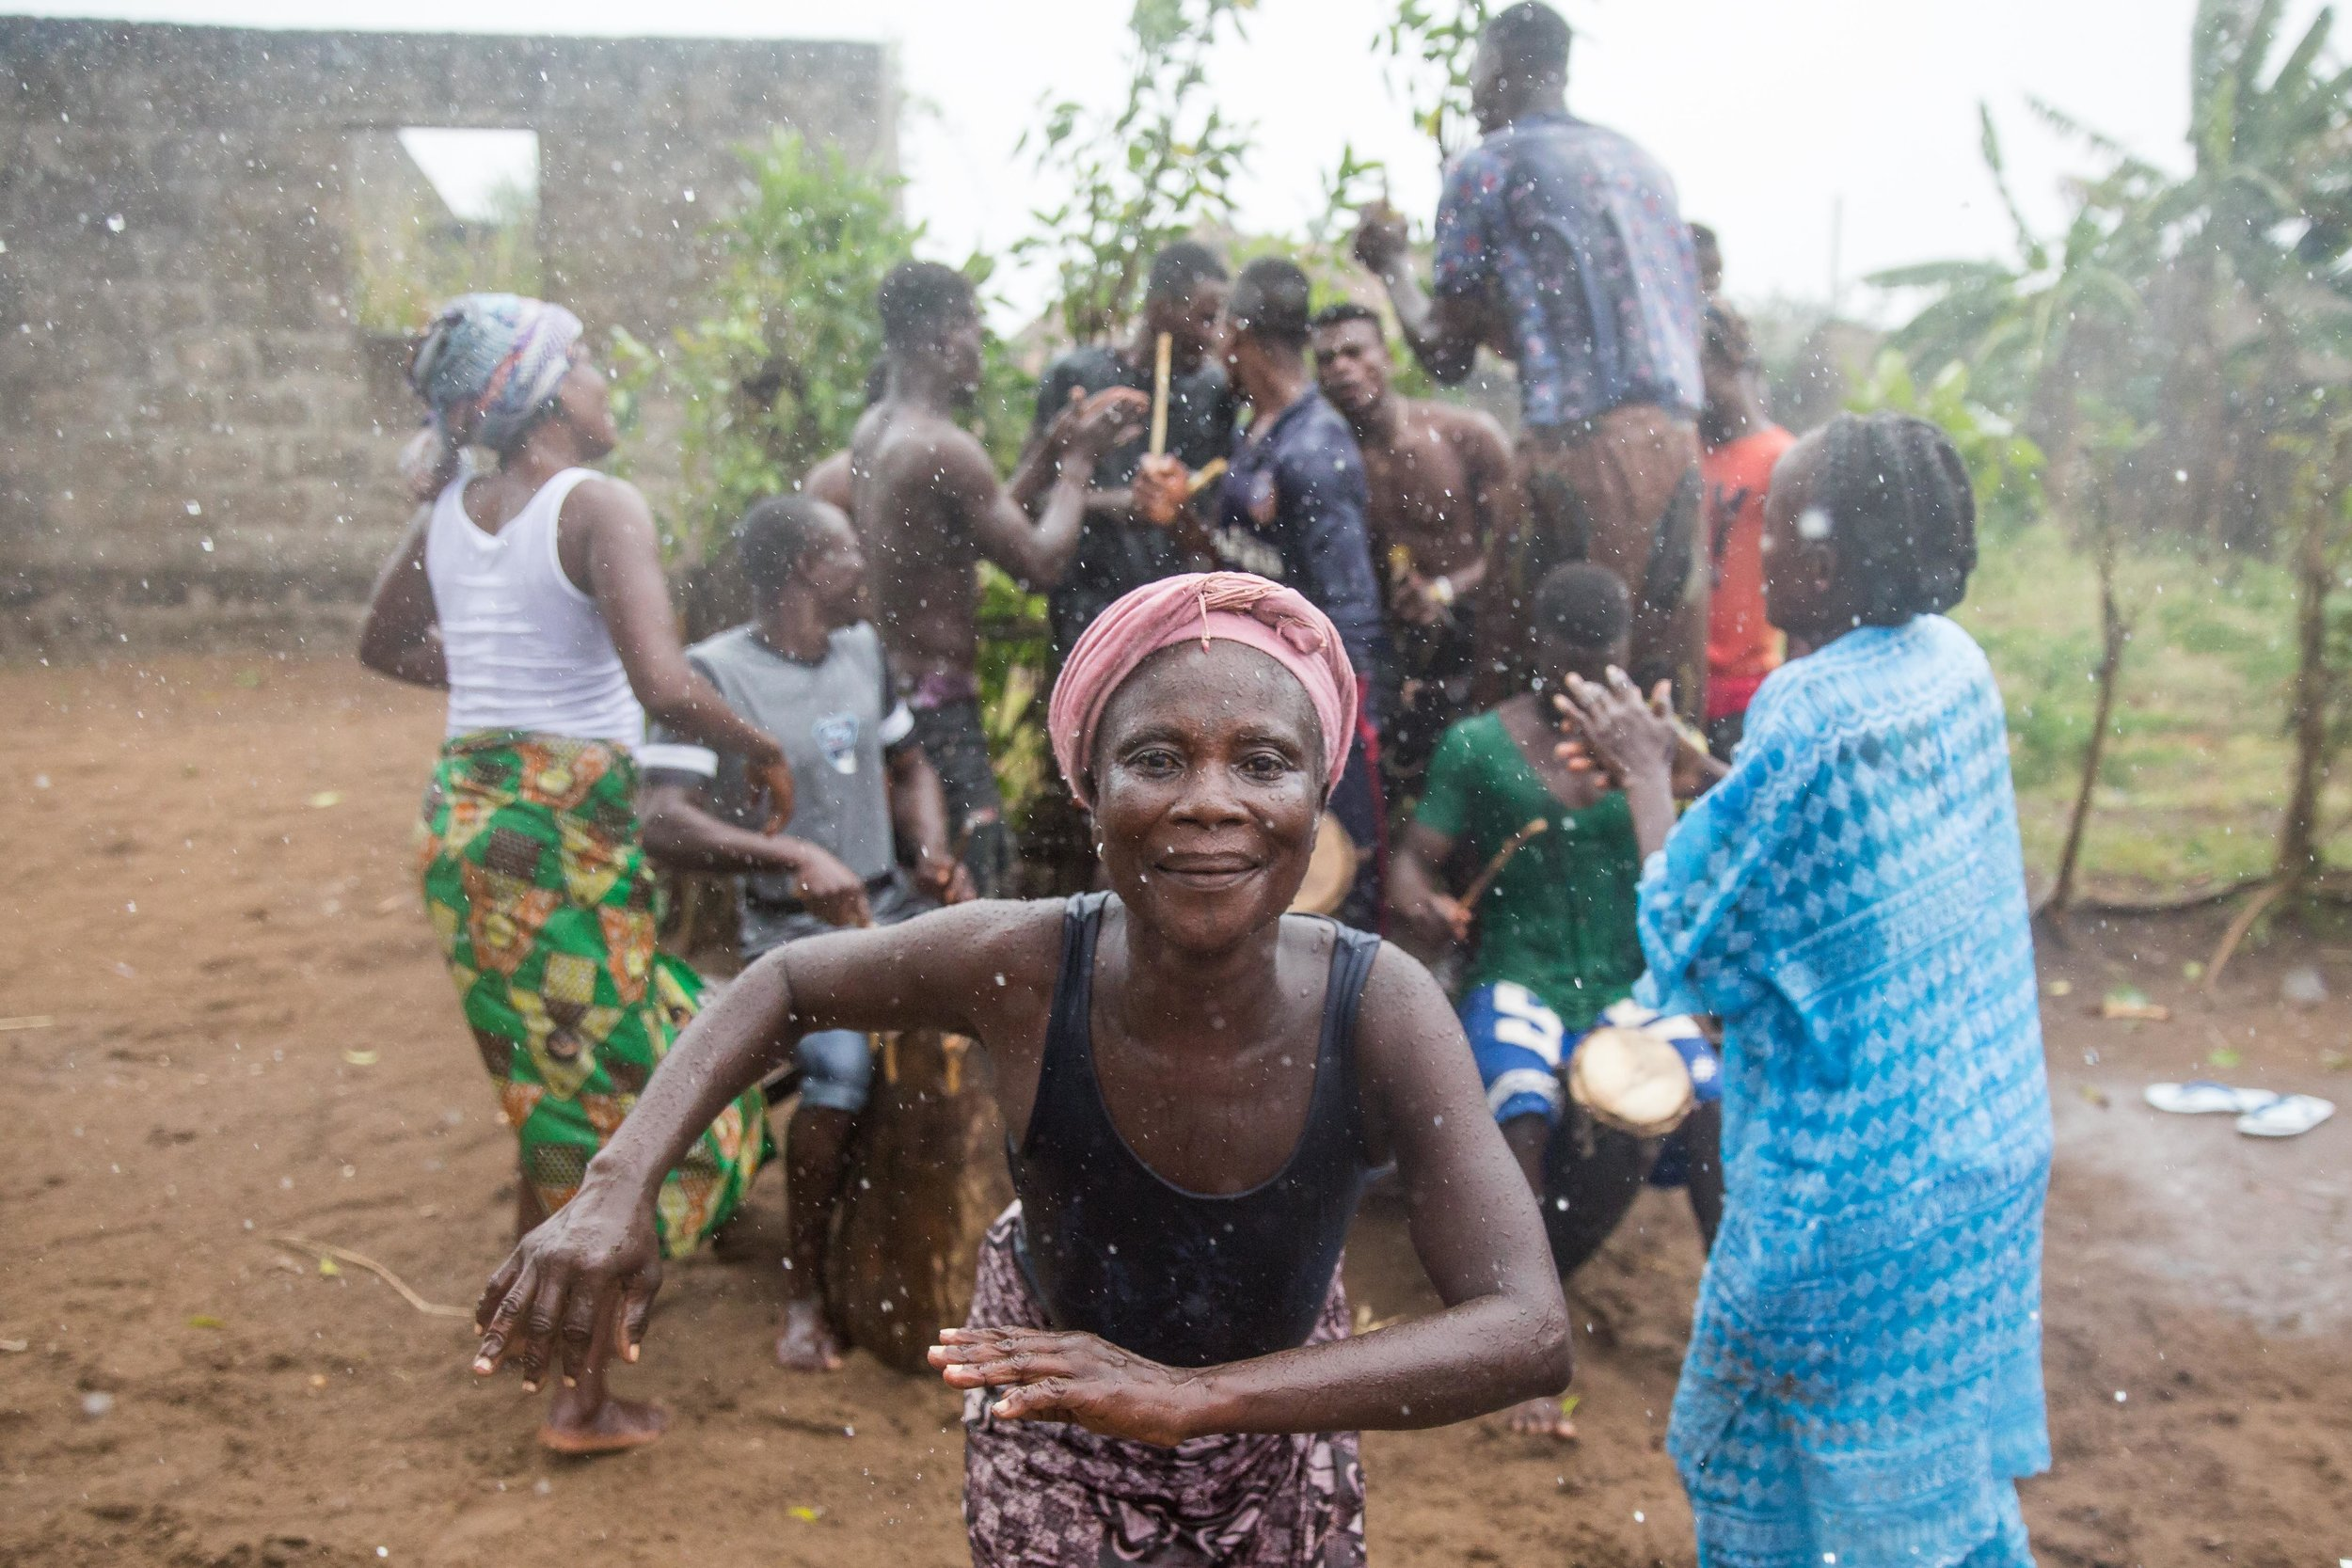 Residents of a small village near Ouidah, southern Benin, take part in a traditional voodoo ceremony.